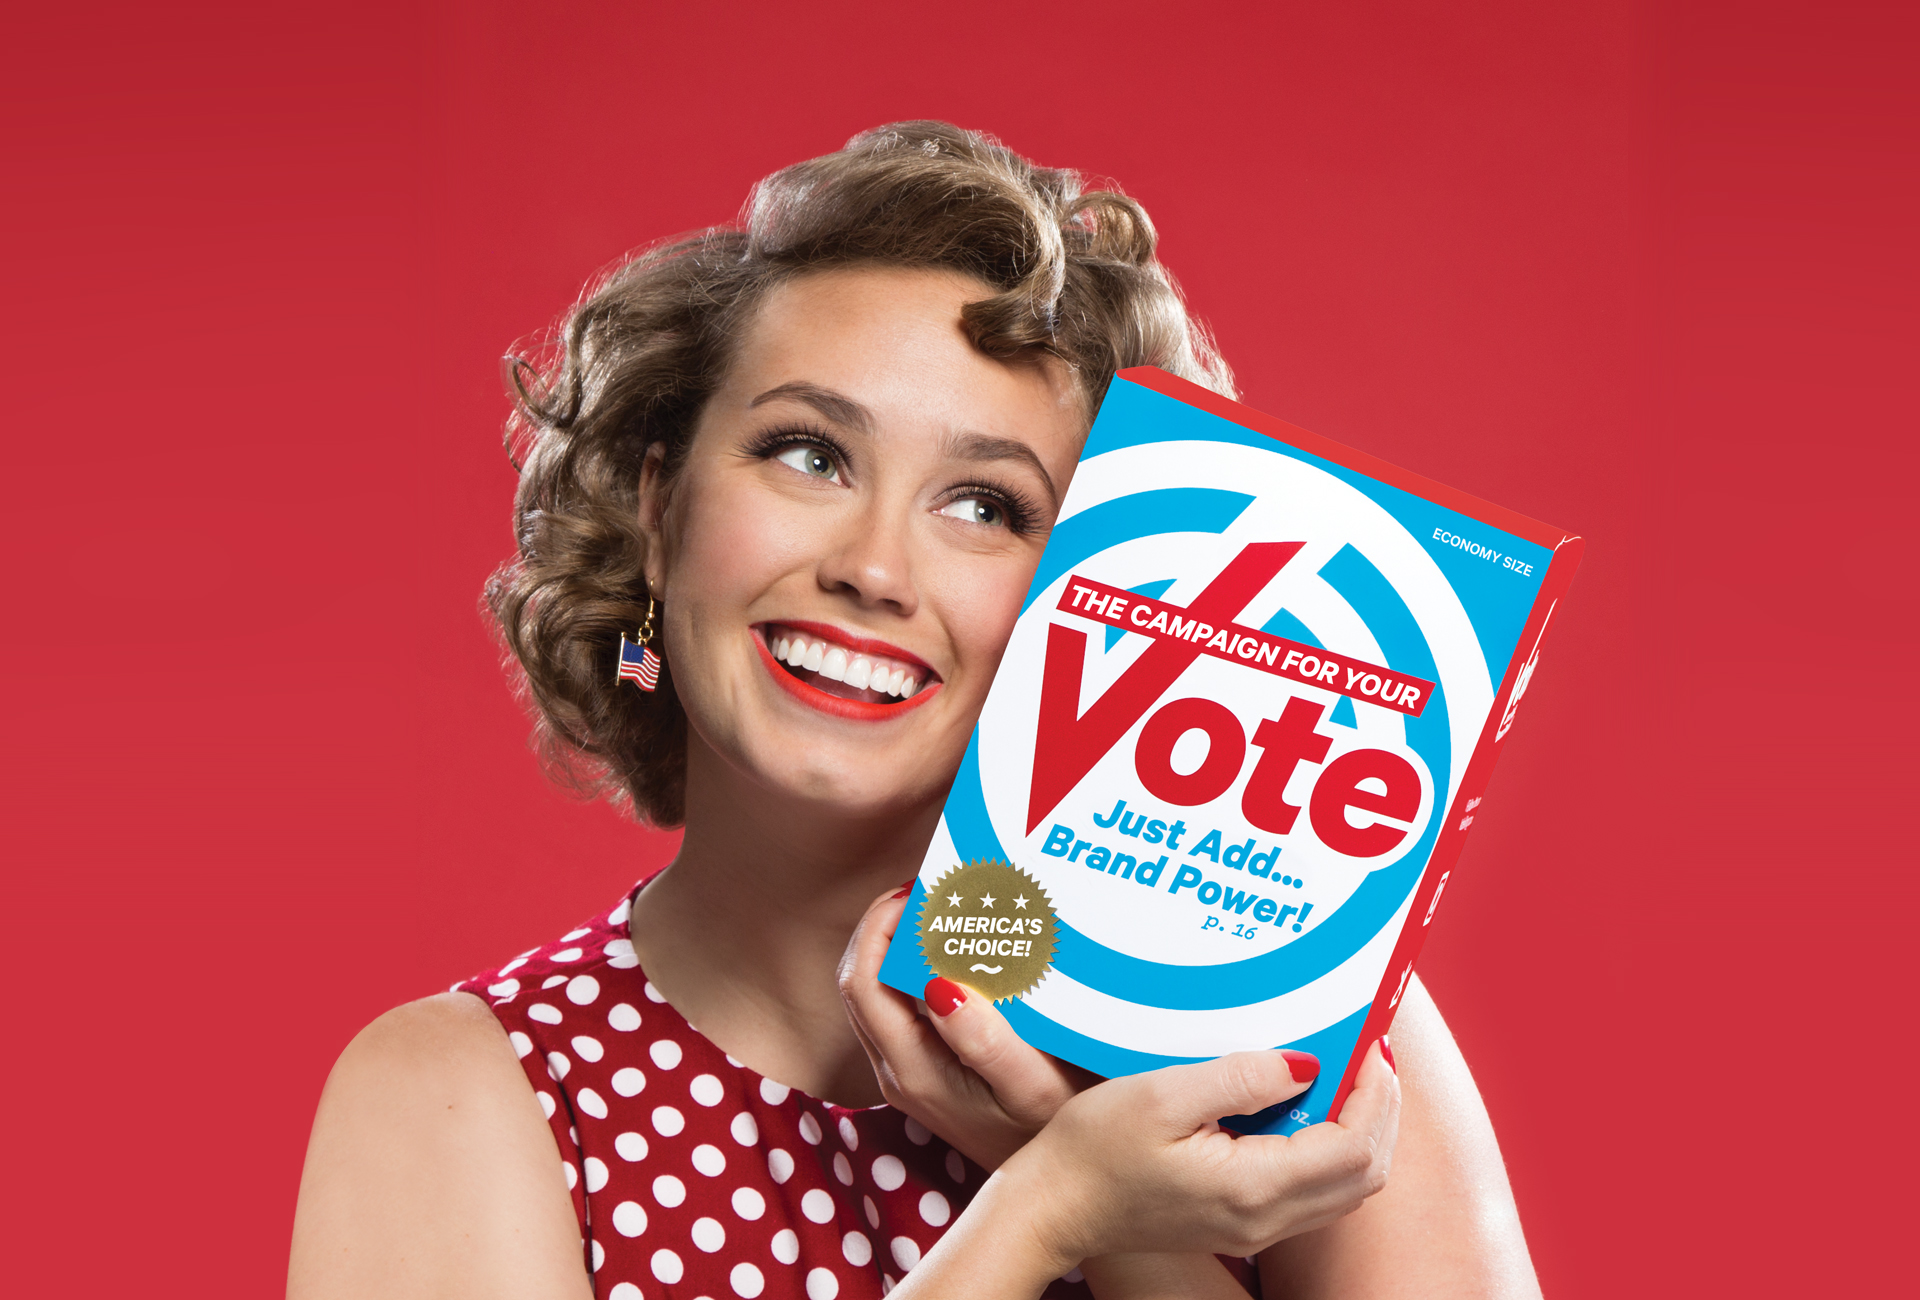 A tongue-in-cheek photo of a smiling woman holding a brightly branded